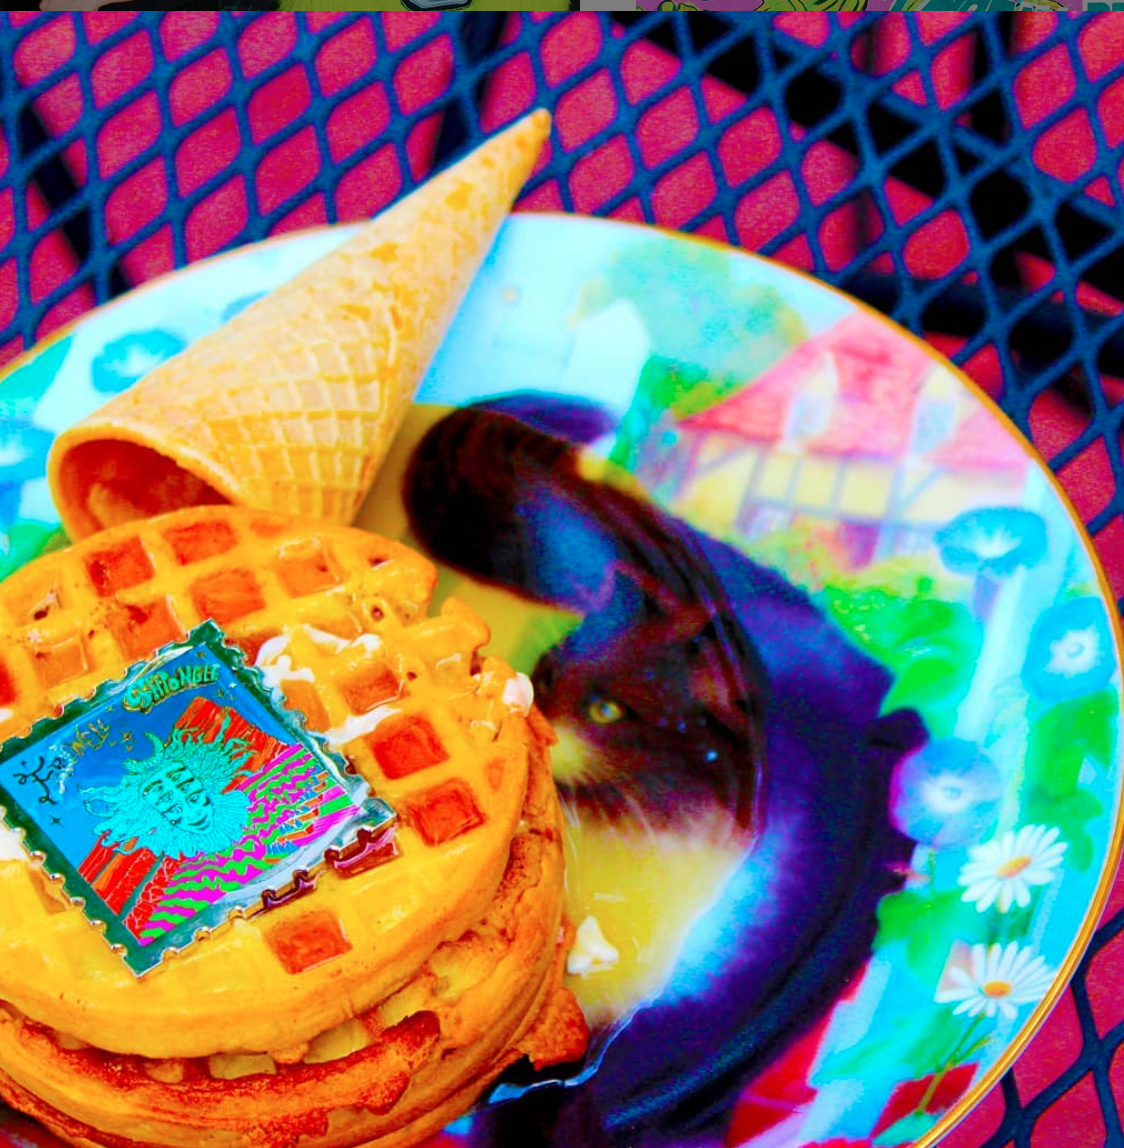 Waffles spilling out of a waffle cone. Waffle Cone Club pins live painted for a Shpongle show at Red Rocks Amphitheatre.